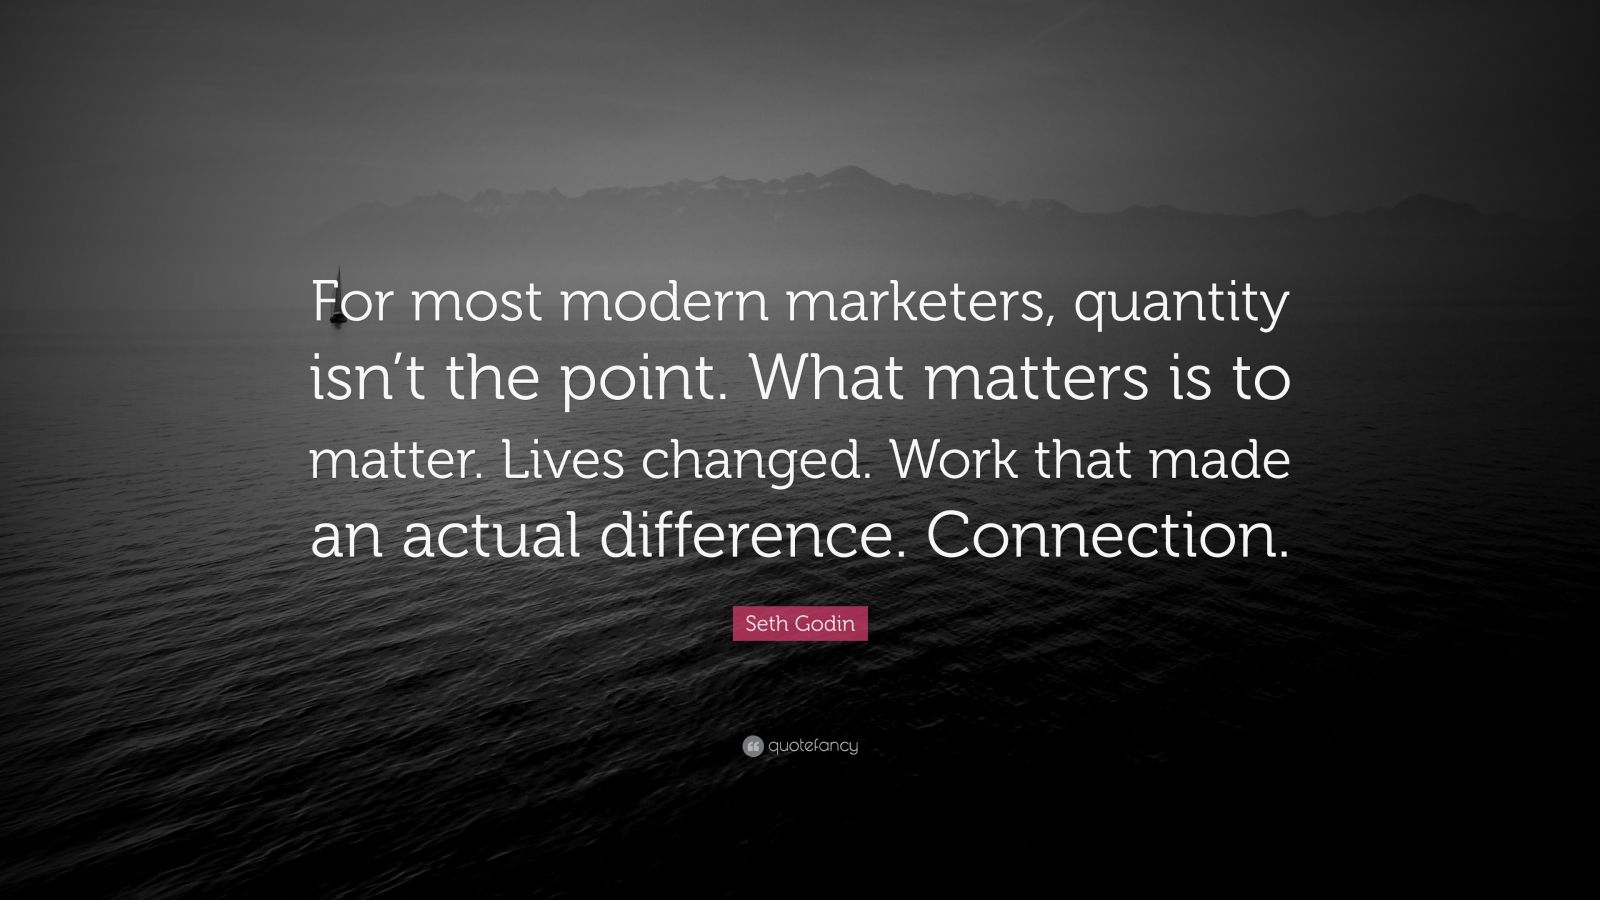 """Seth Godin Quote: """"For most modern marketers, quantity isn't the point. What matters is to matter. Lives changed. Work that made an actual difference. Connection."""""""